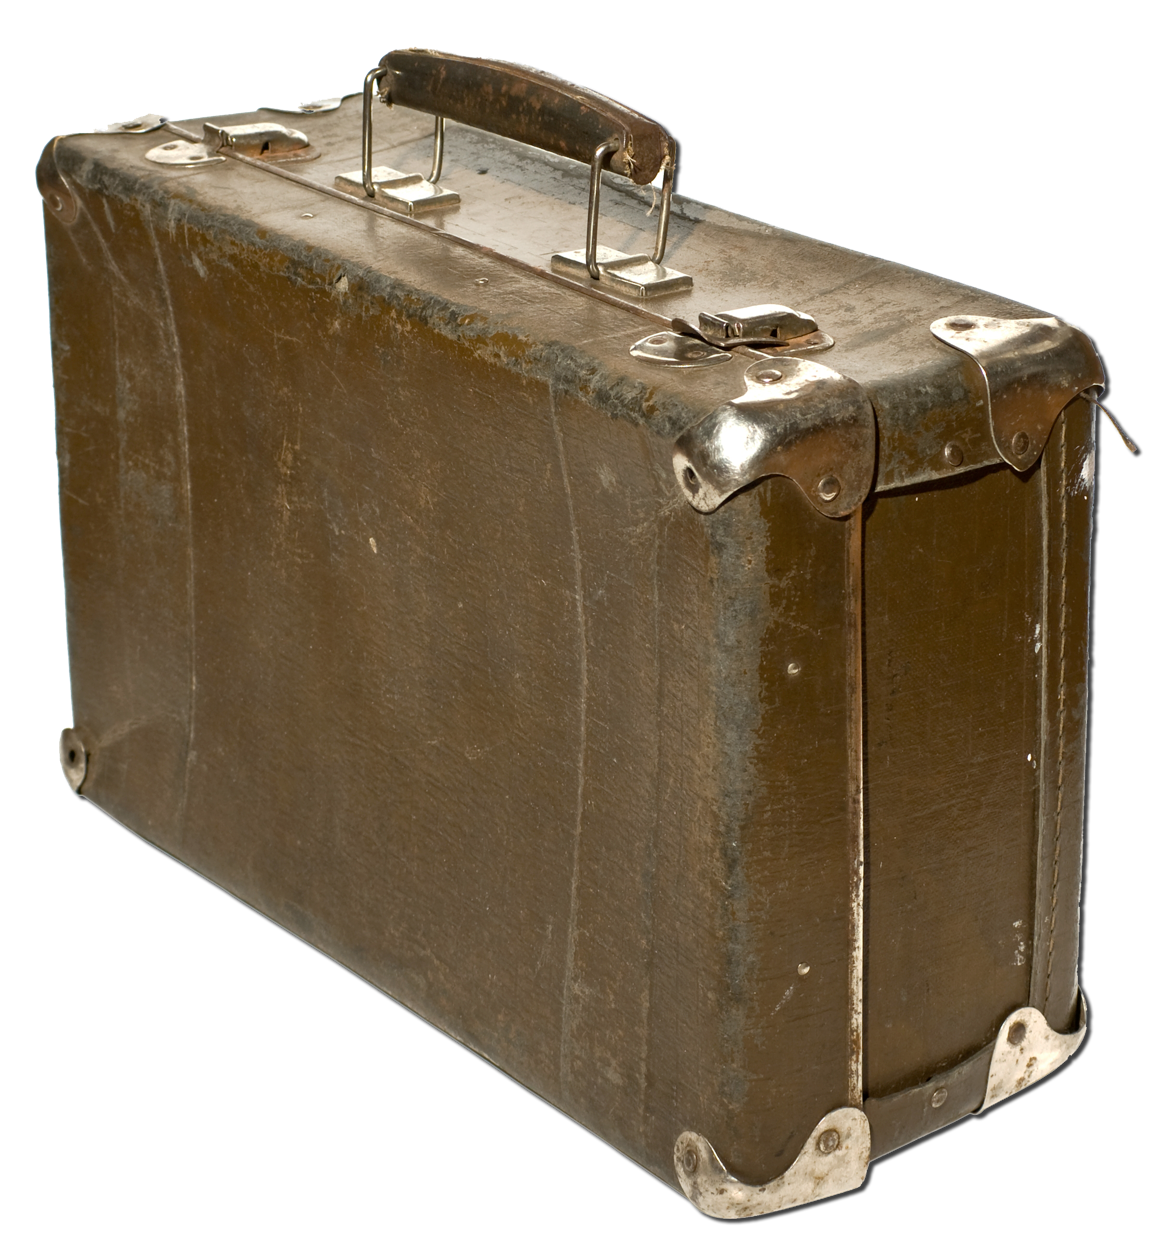 Briefcase transparent clear. Suitcase png images free